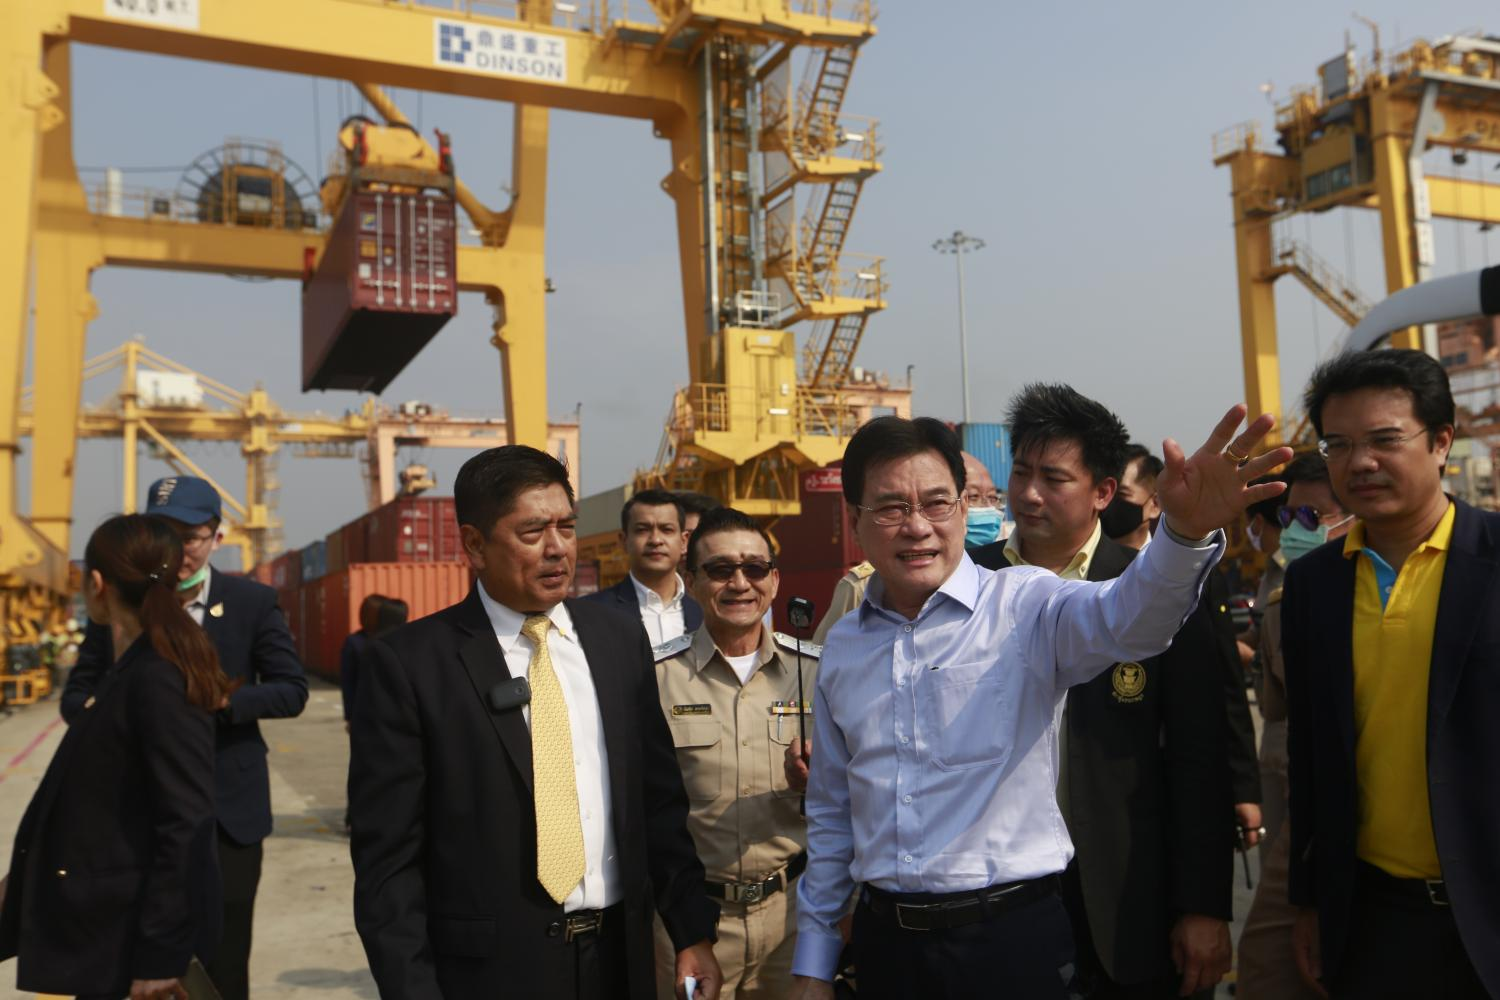 Mr Jurin gestures during his visit to Bangkok Port in Klong Toey. The government has vowed to subsidise part of the import fees for empty and used containers as part of its efforts to alleviate the container shortage. Arnun Chonmahatrakool